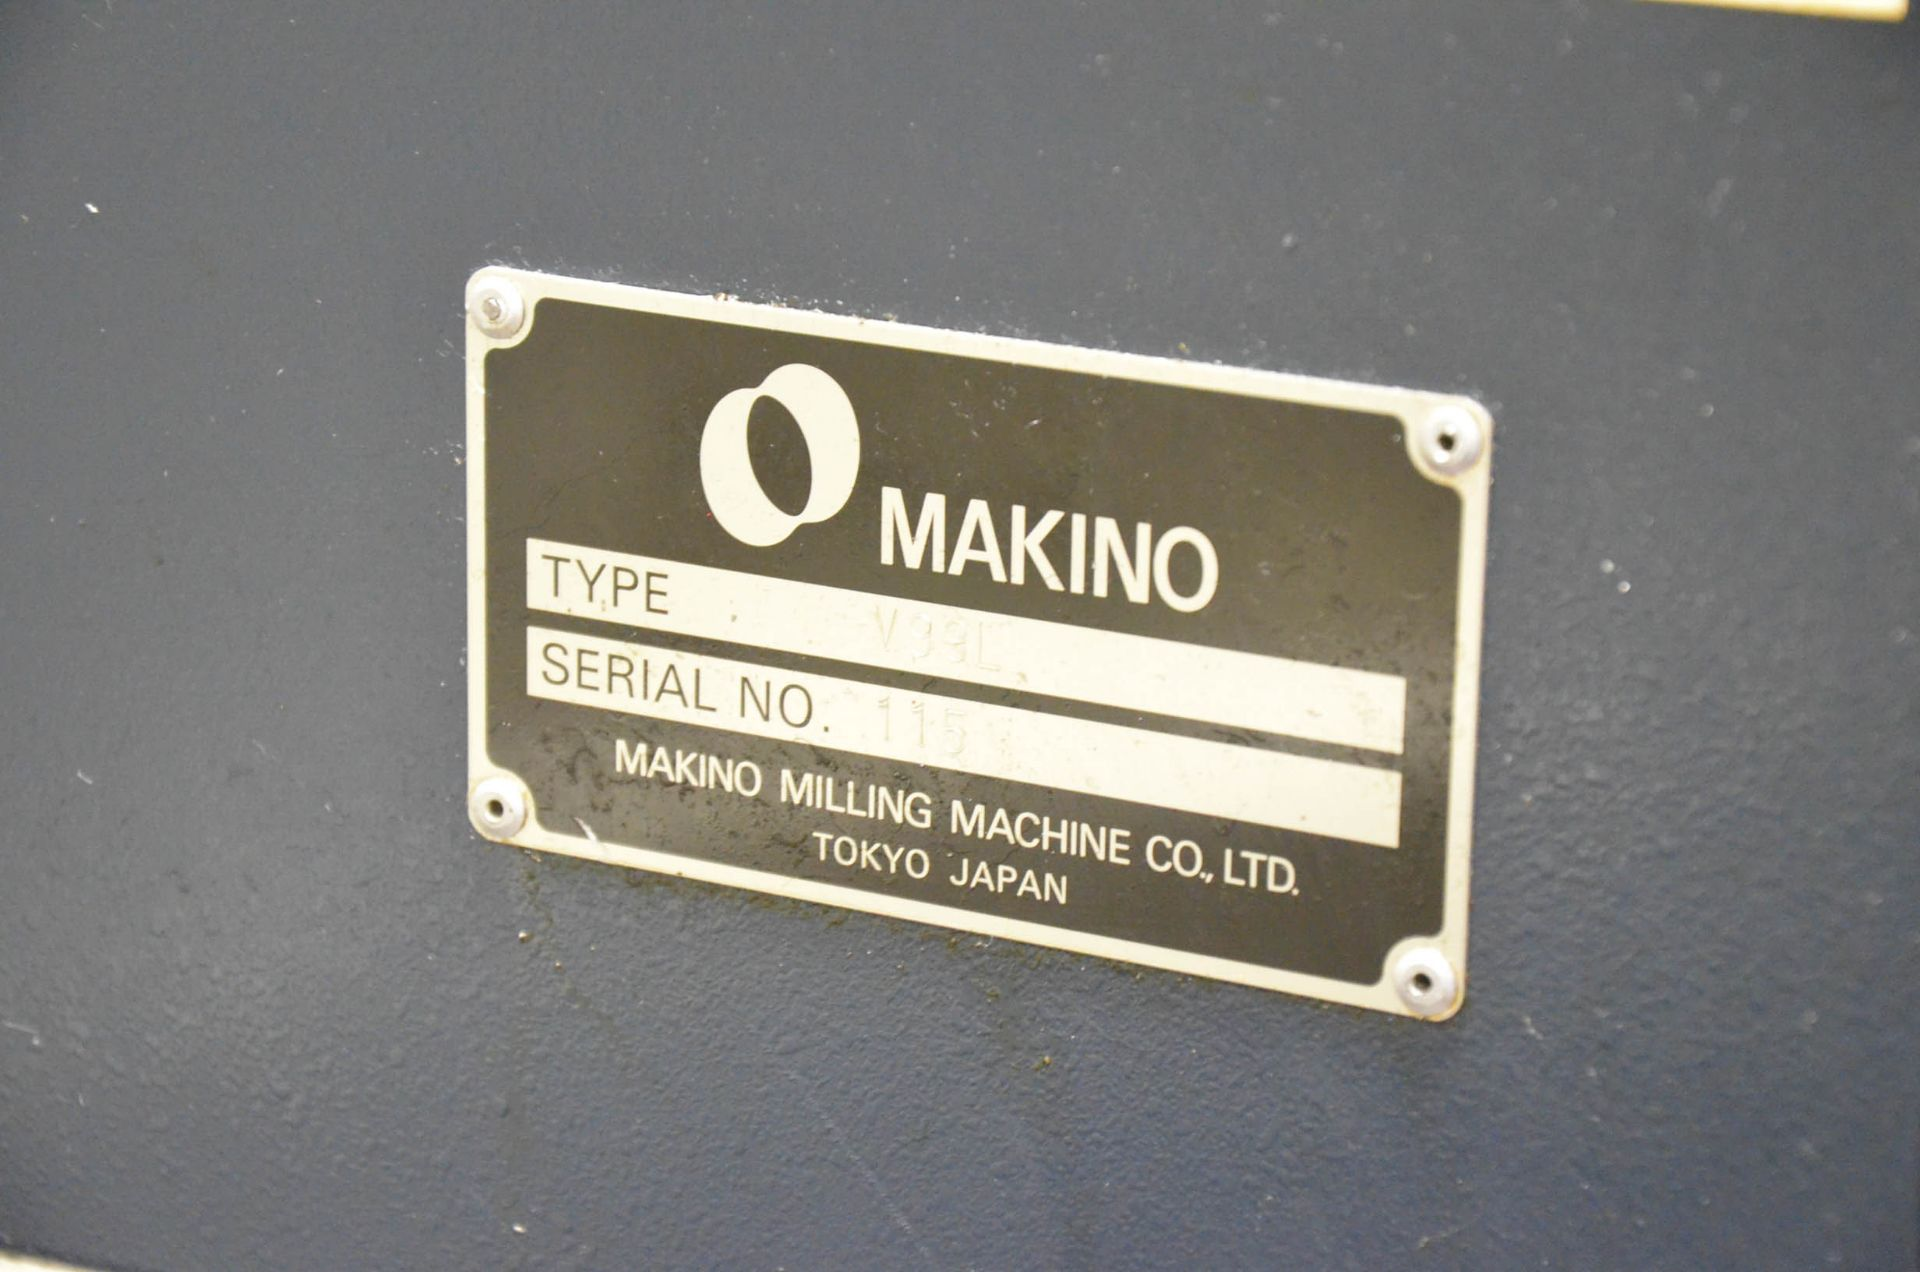 MAKINO (2008) V99L(#50) CNC VERTICAL MACHINING CENTER WITH MAKINO PROFESSIONAL 5 CNC CONTROL, 39. - Image 6 of 12